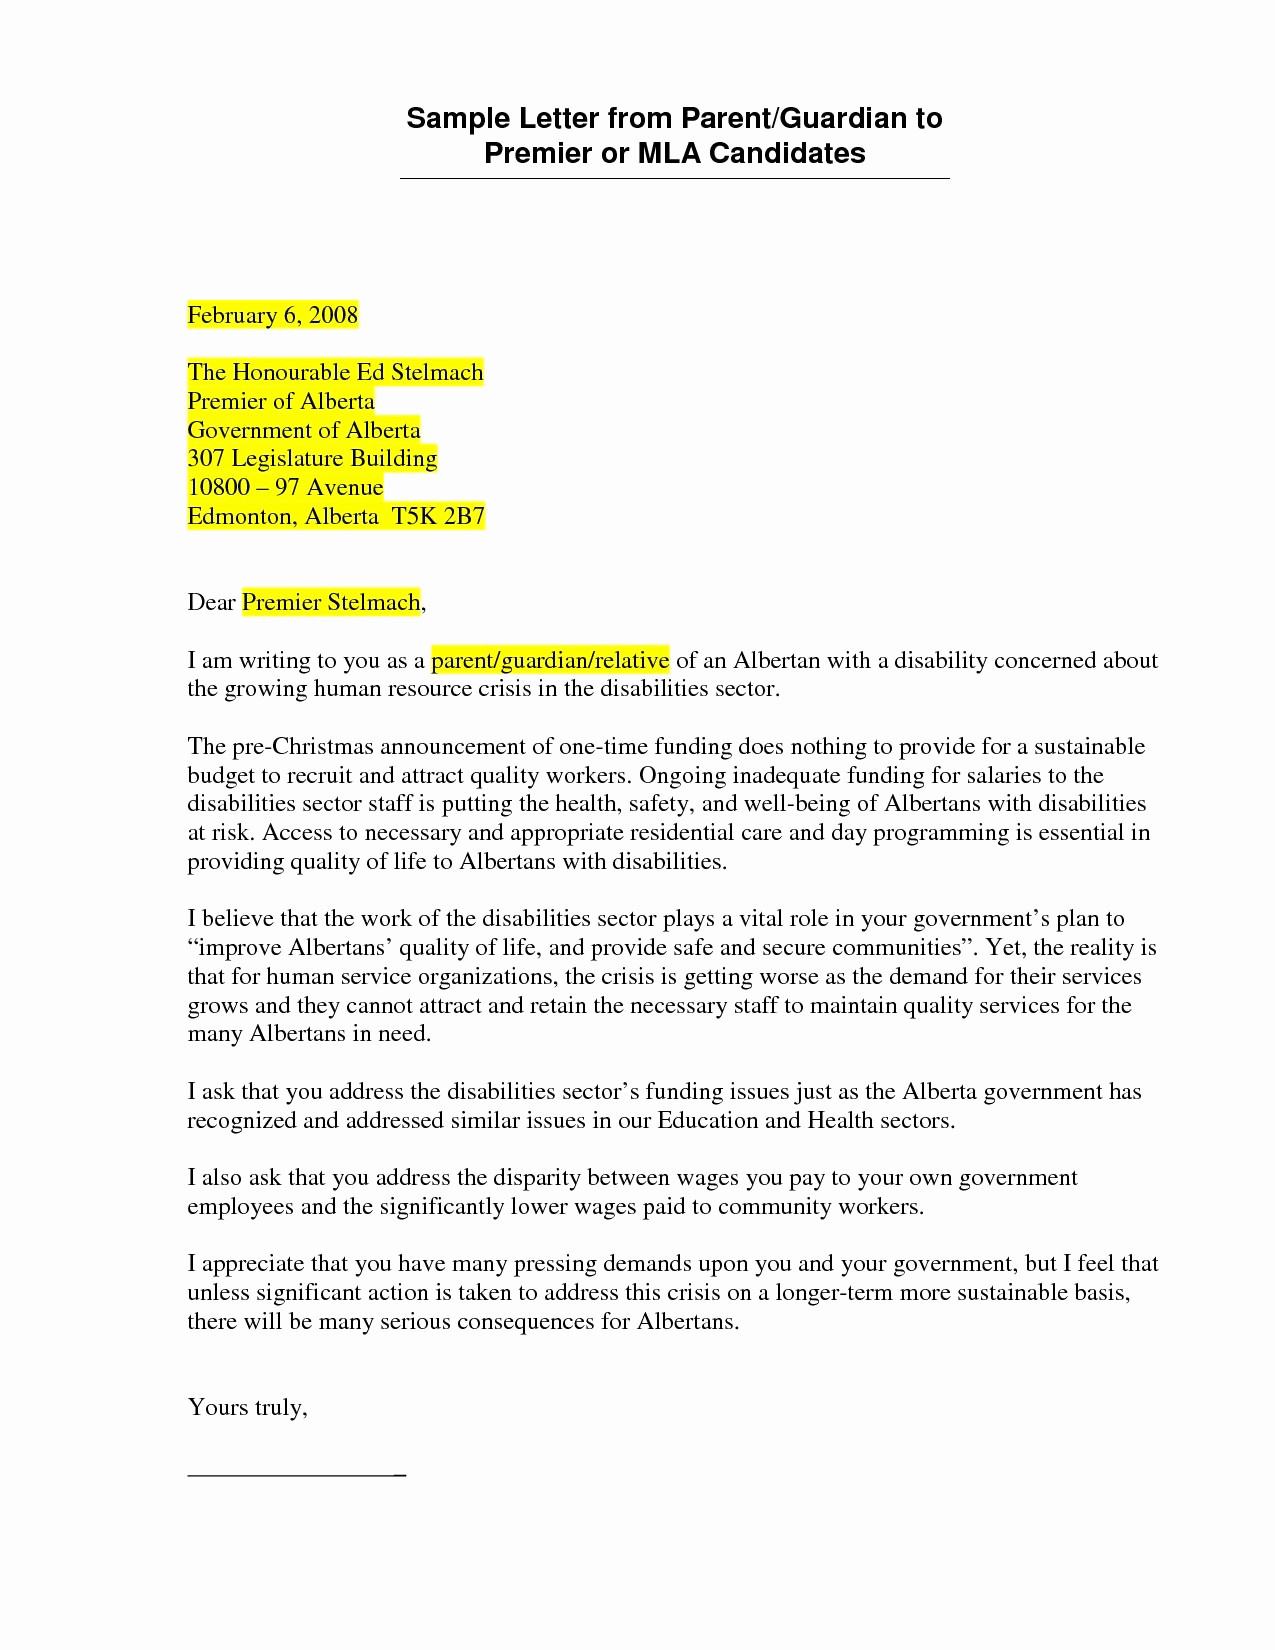 Mla Cover Letter Template - What Should Your Cover Letter Say Inspirational Resume Mla format